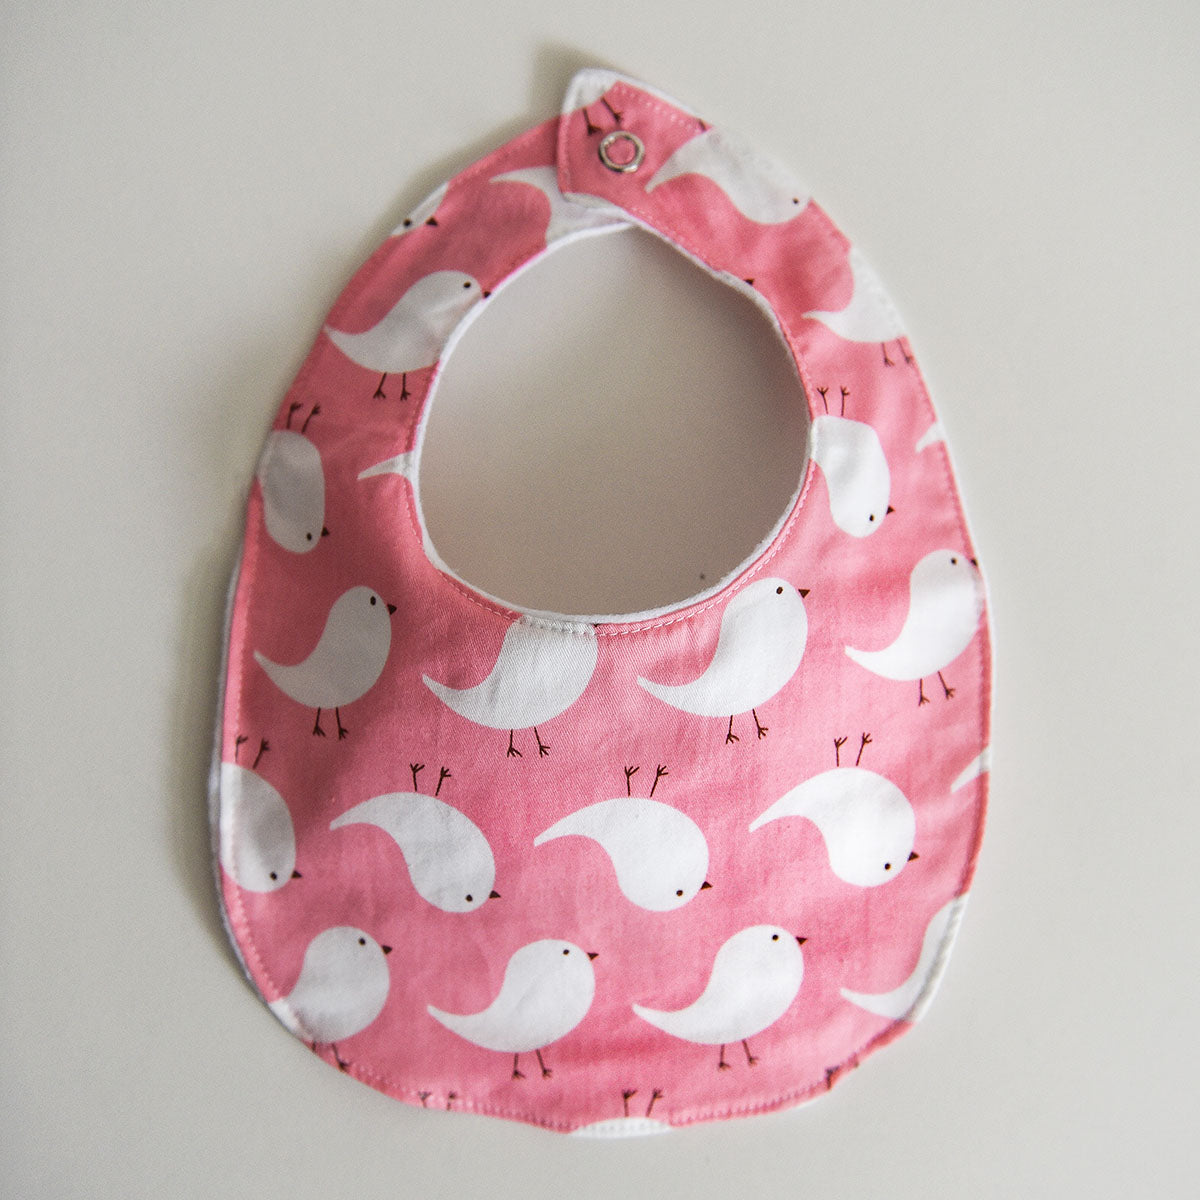 Tweety Bird Baby Bib - Pink